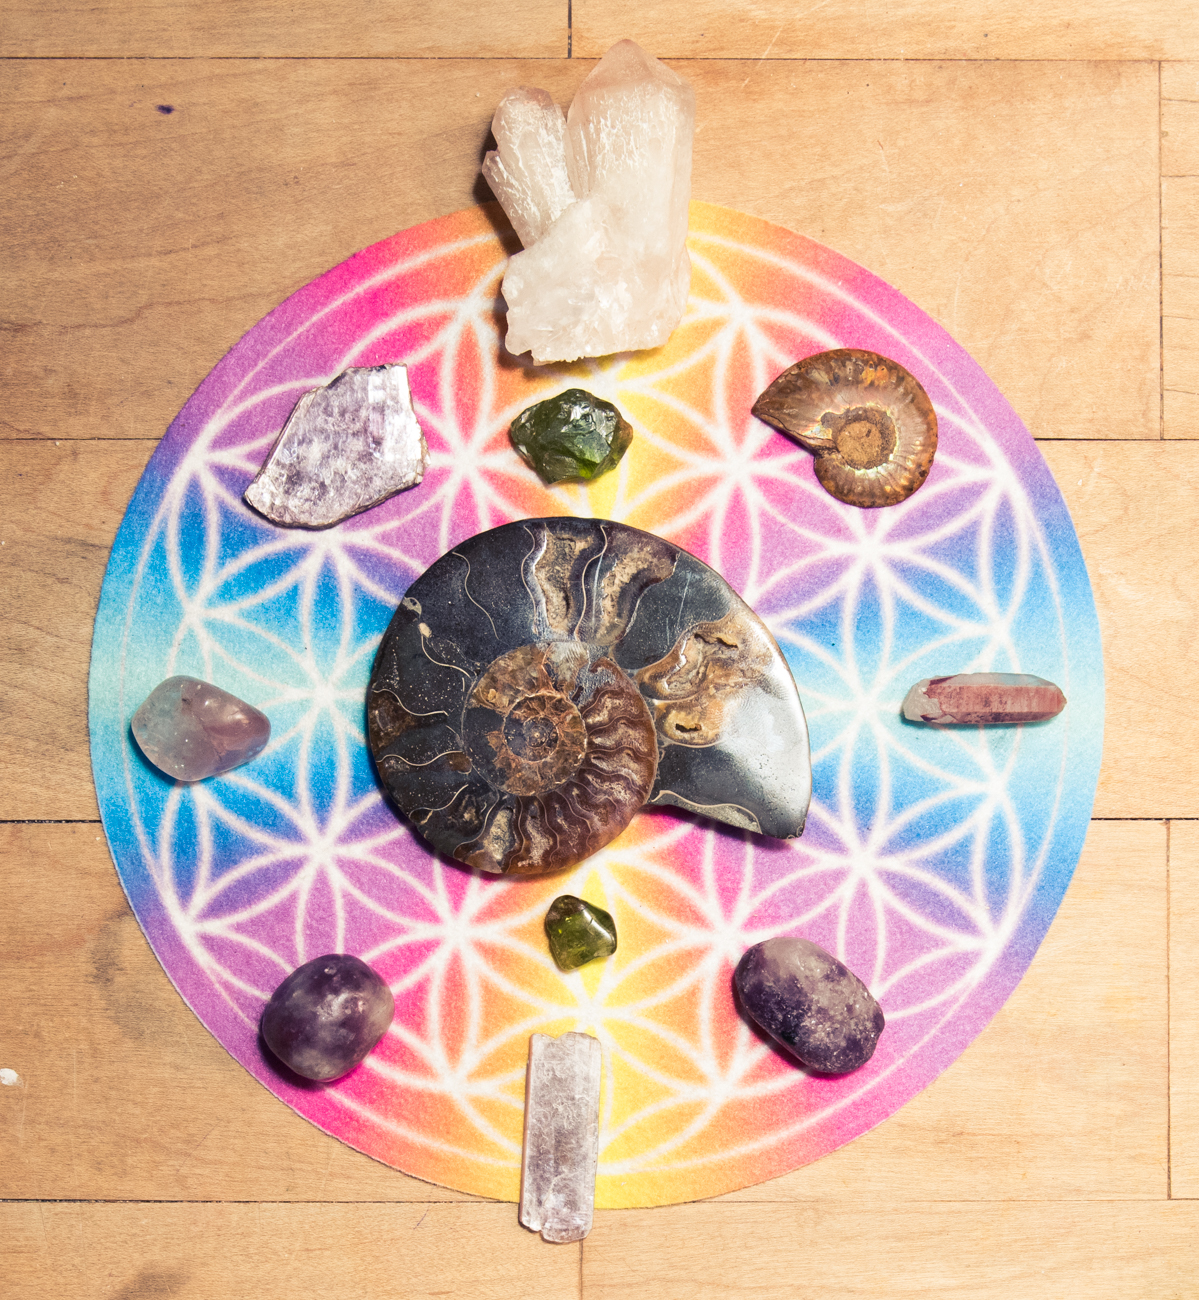 A Session With Kylie Jenner's Crystal Healer